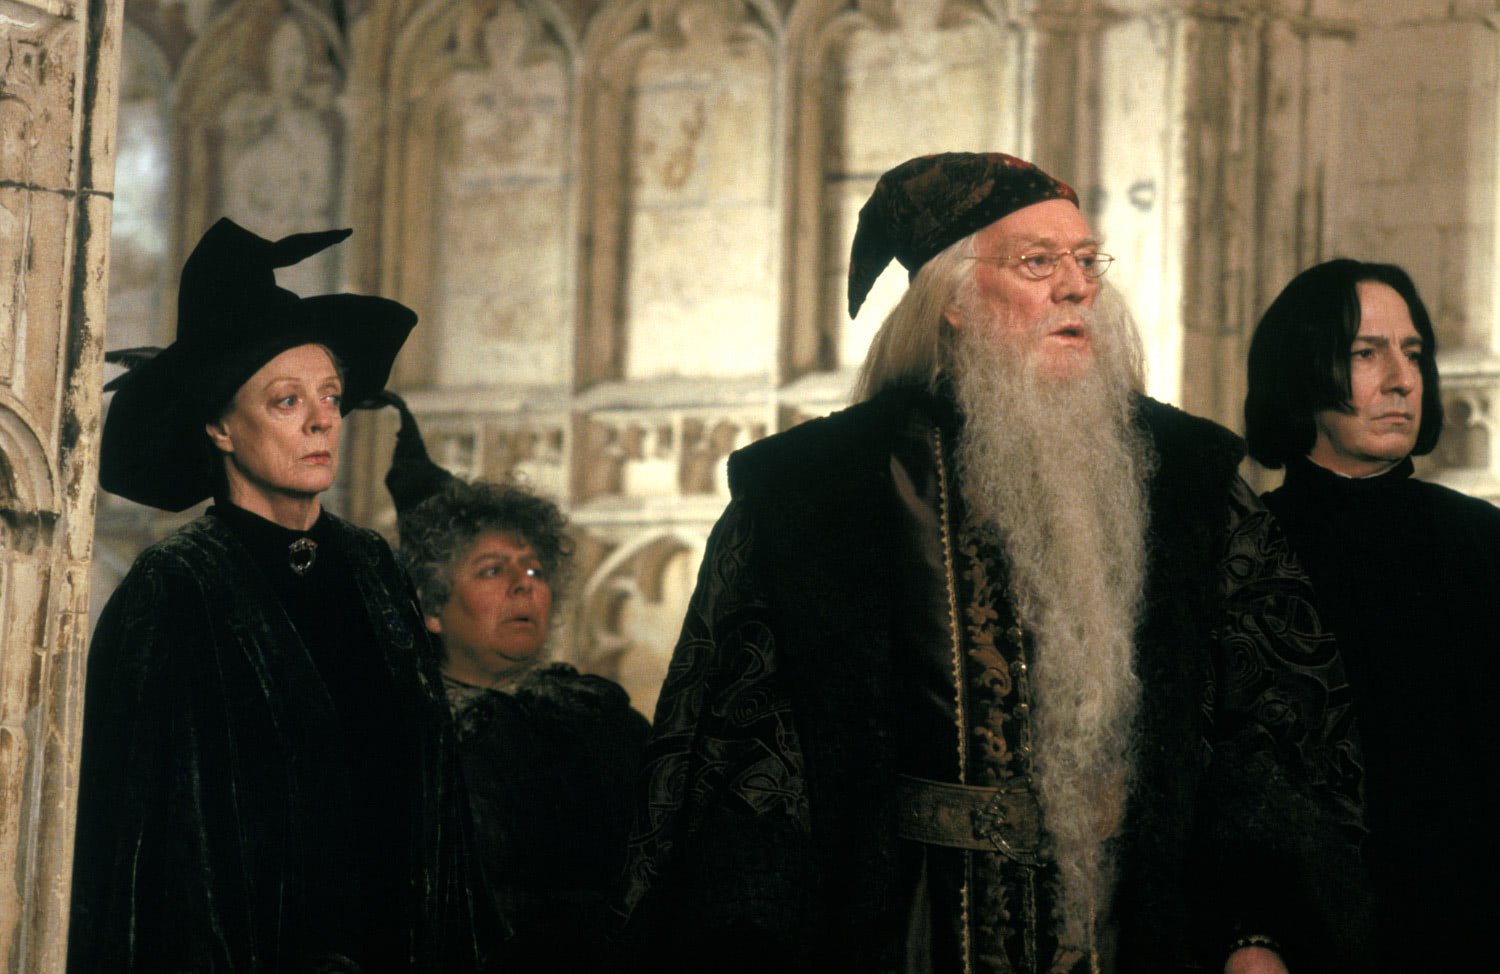 McGonagall, Sprout, Dumbledore and Snape